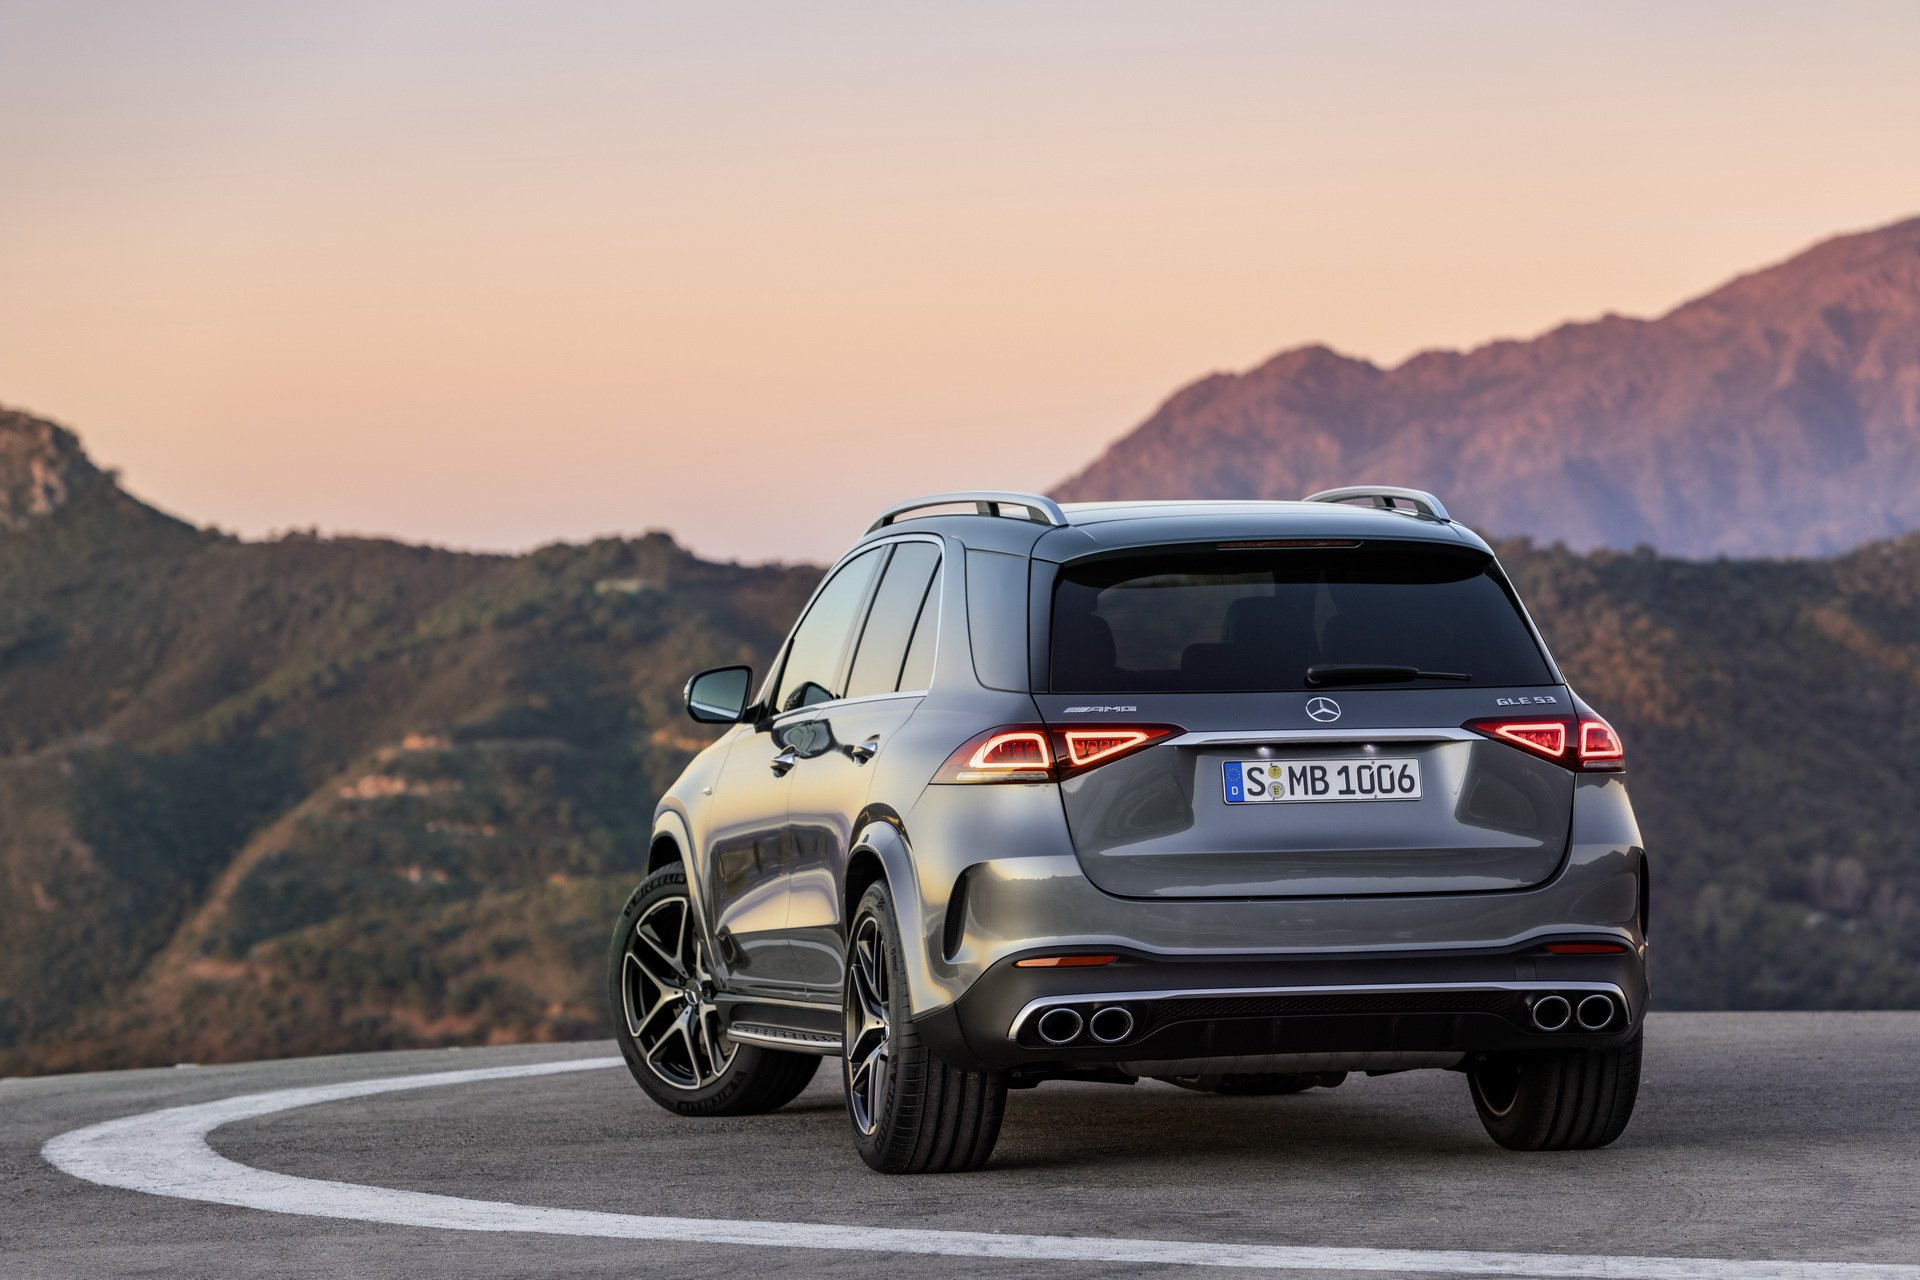 2020 Mercedes-AMG GLE53 4Matic+ rear